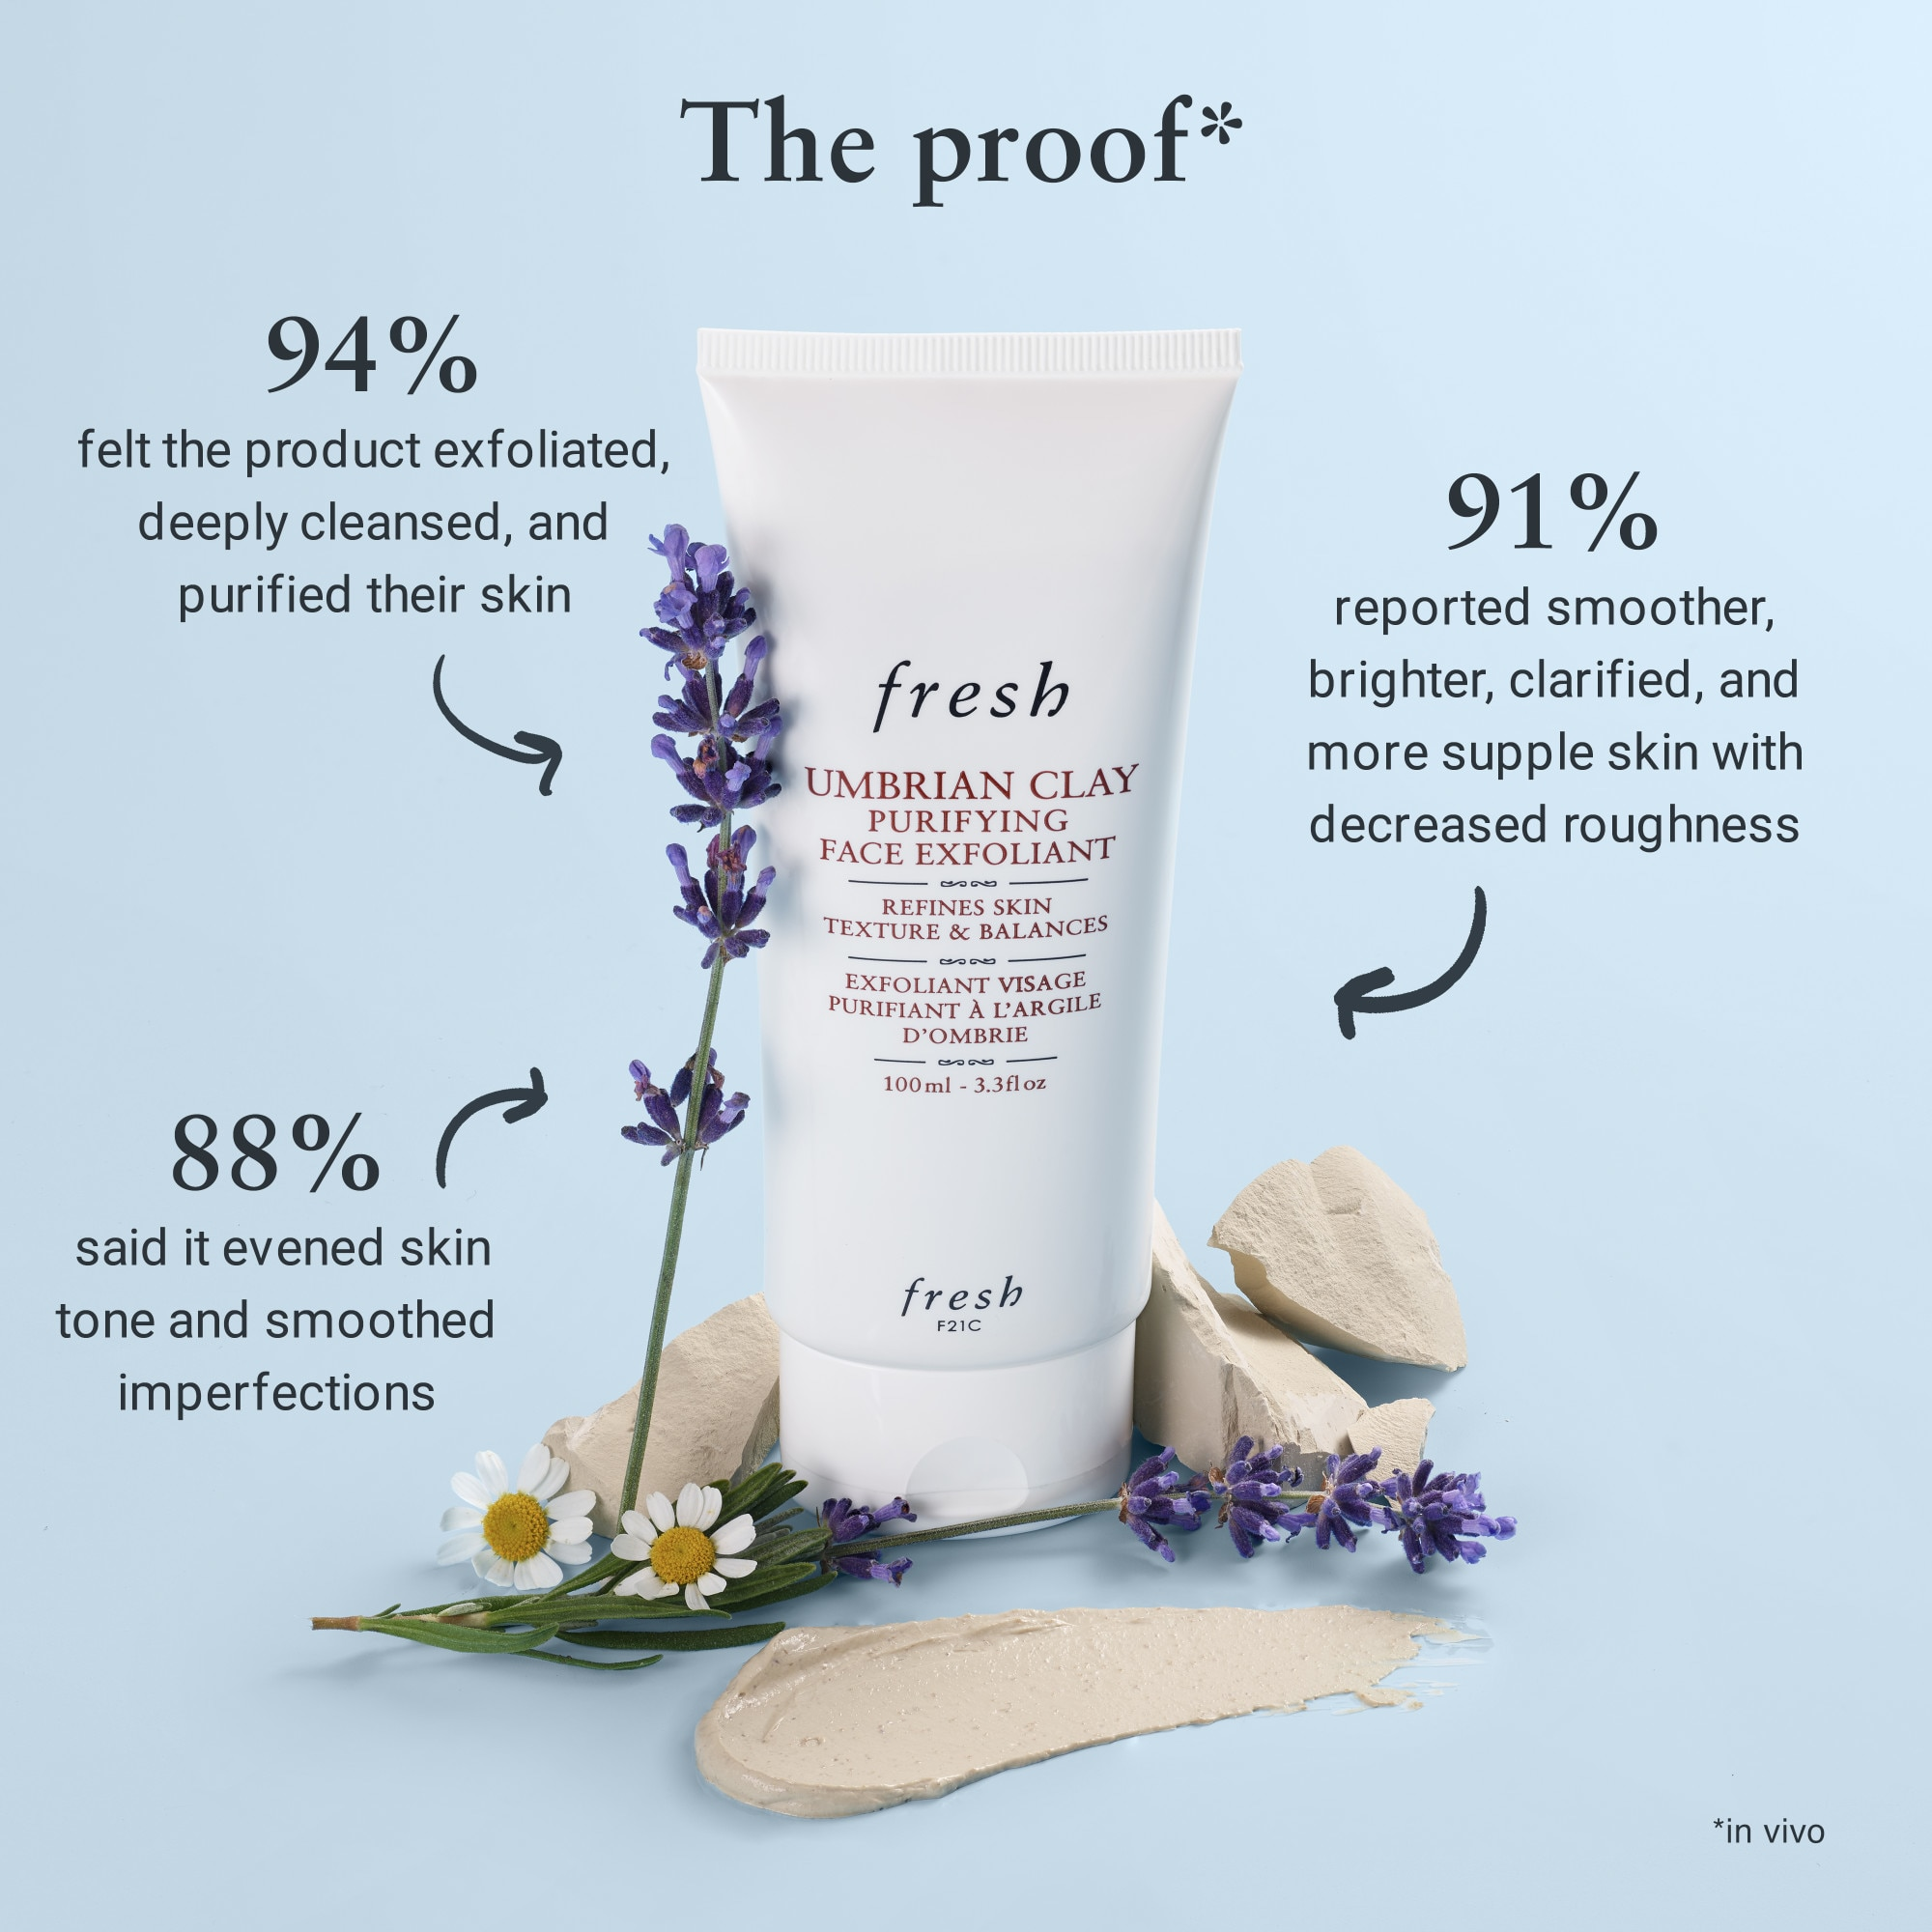 UMBRIAN CLAY PURIFYING FACE EXFOLIANT